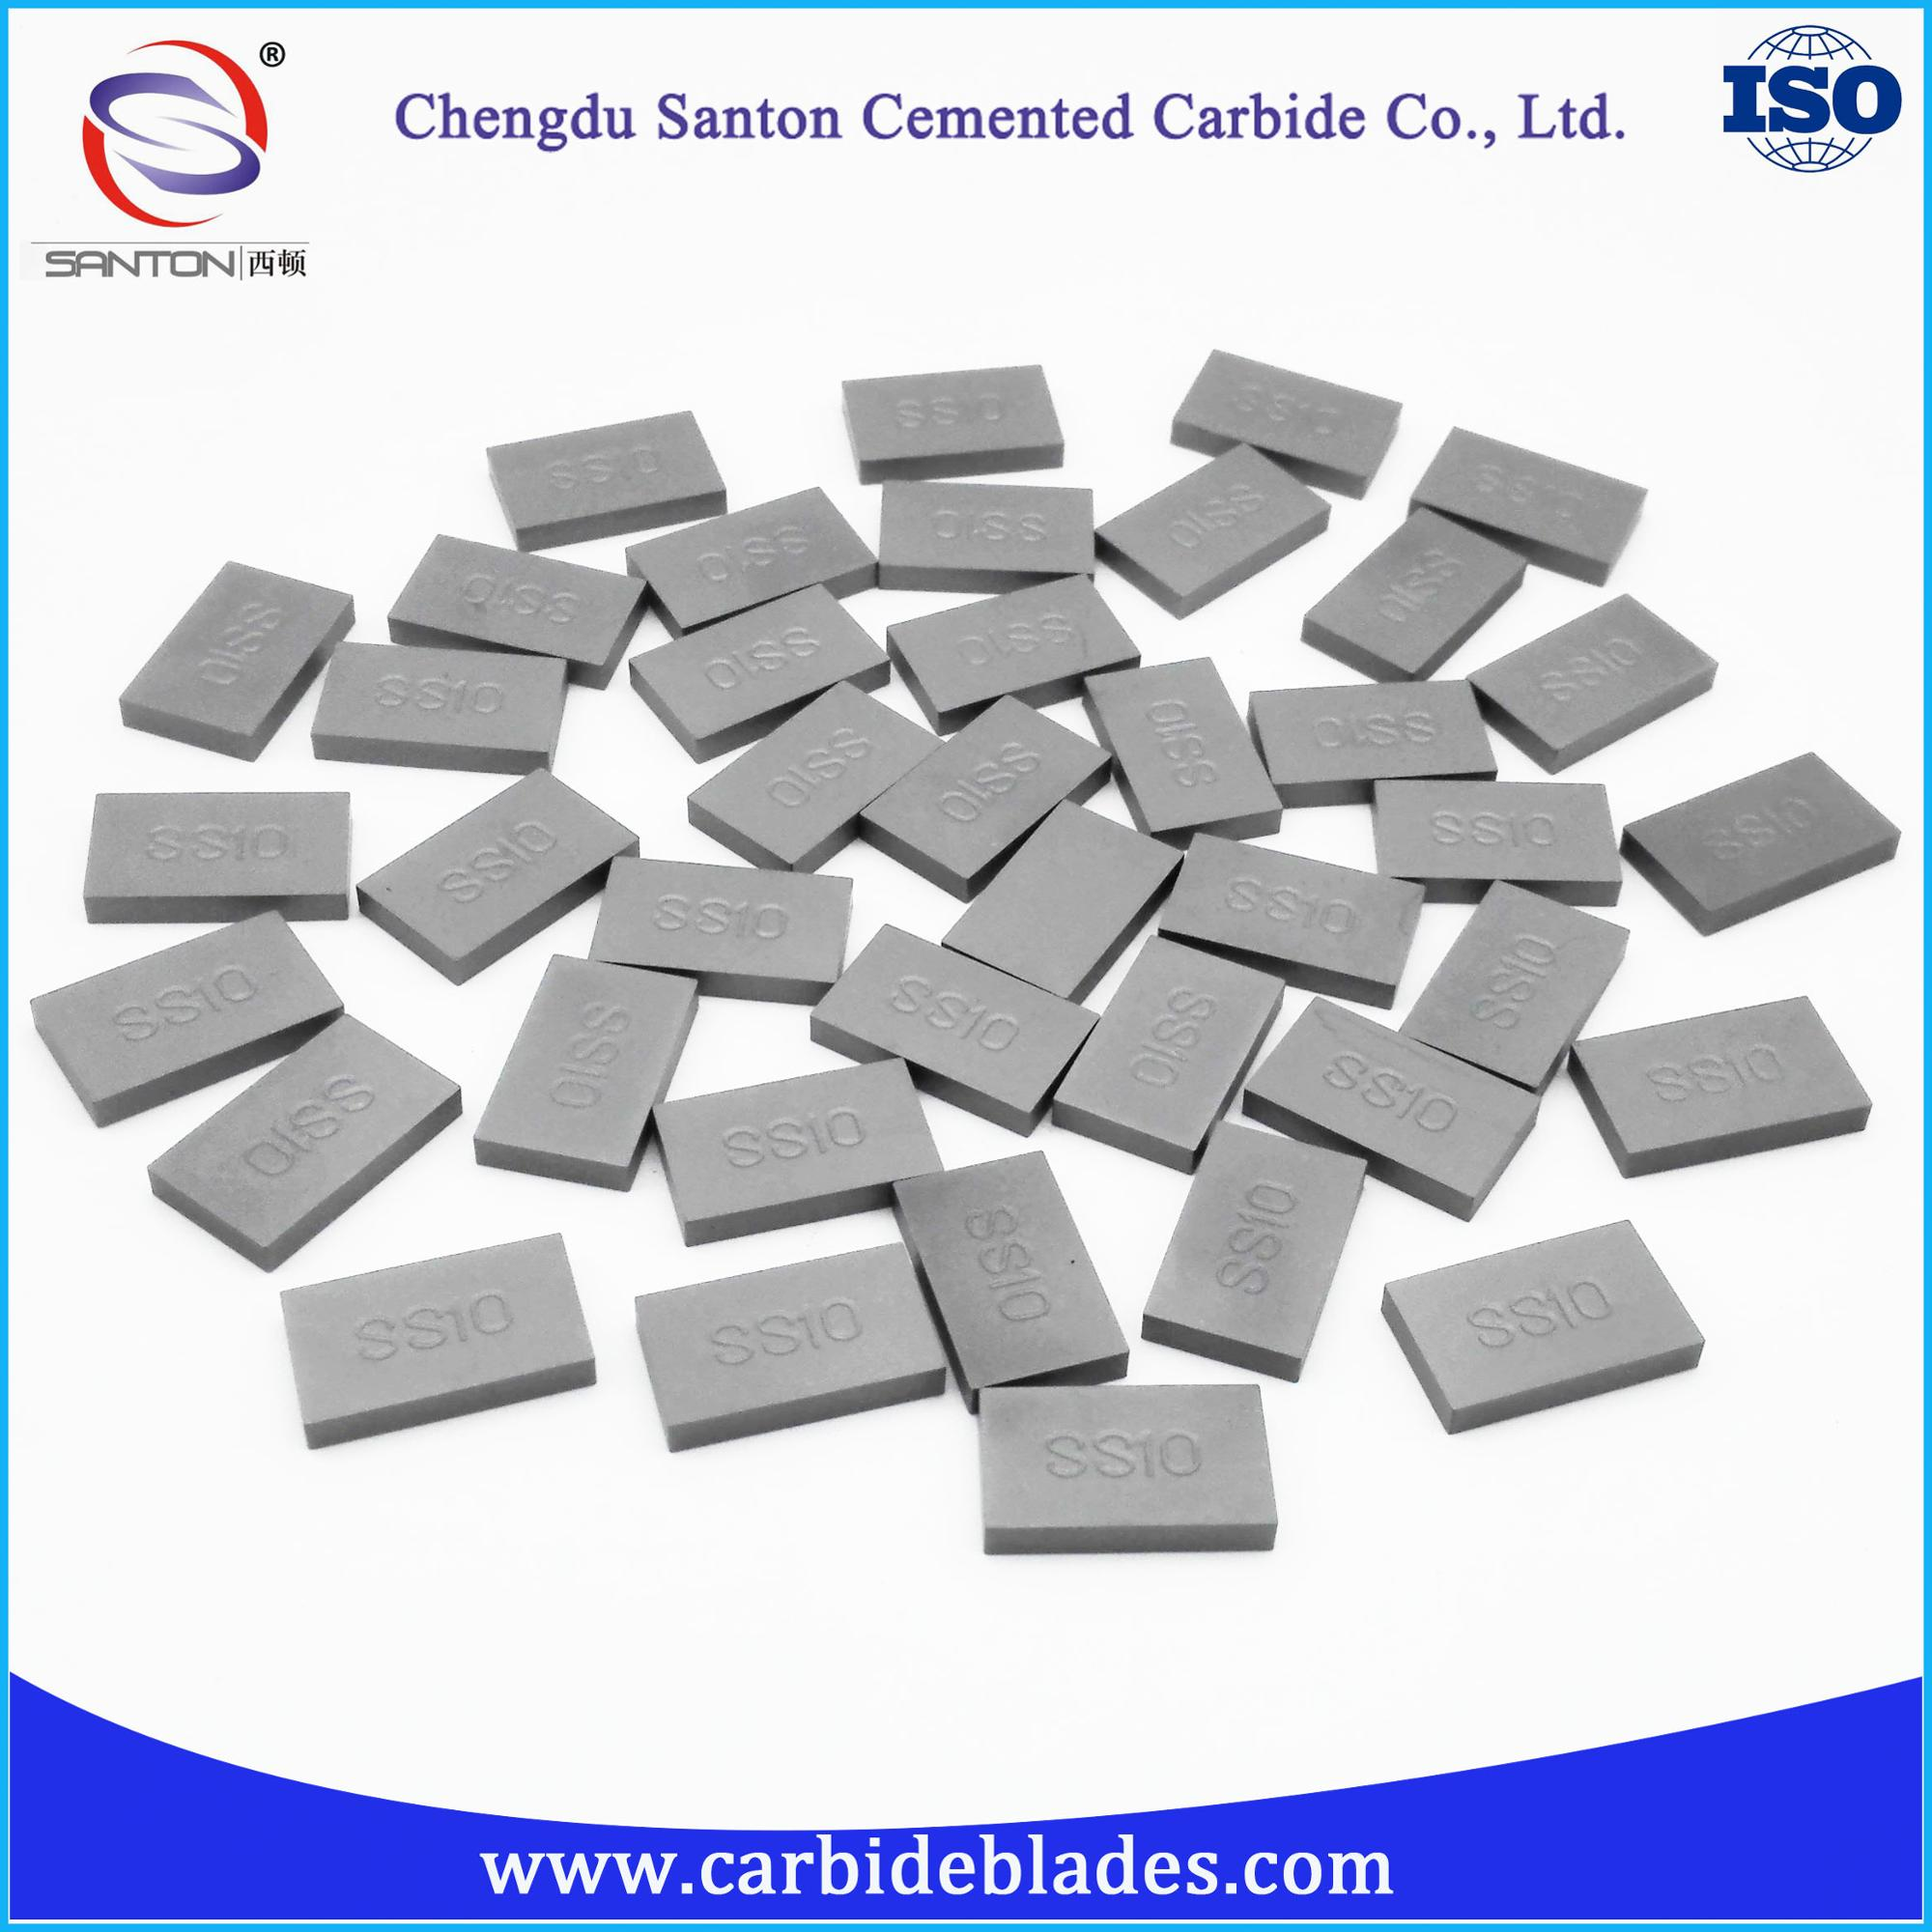 cemented carbide ss10 inserts for stone cutting